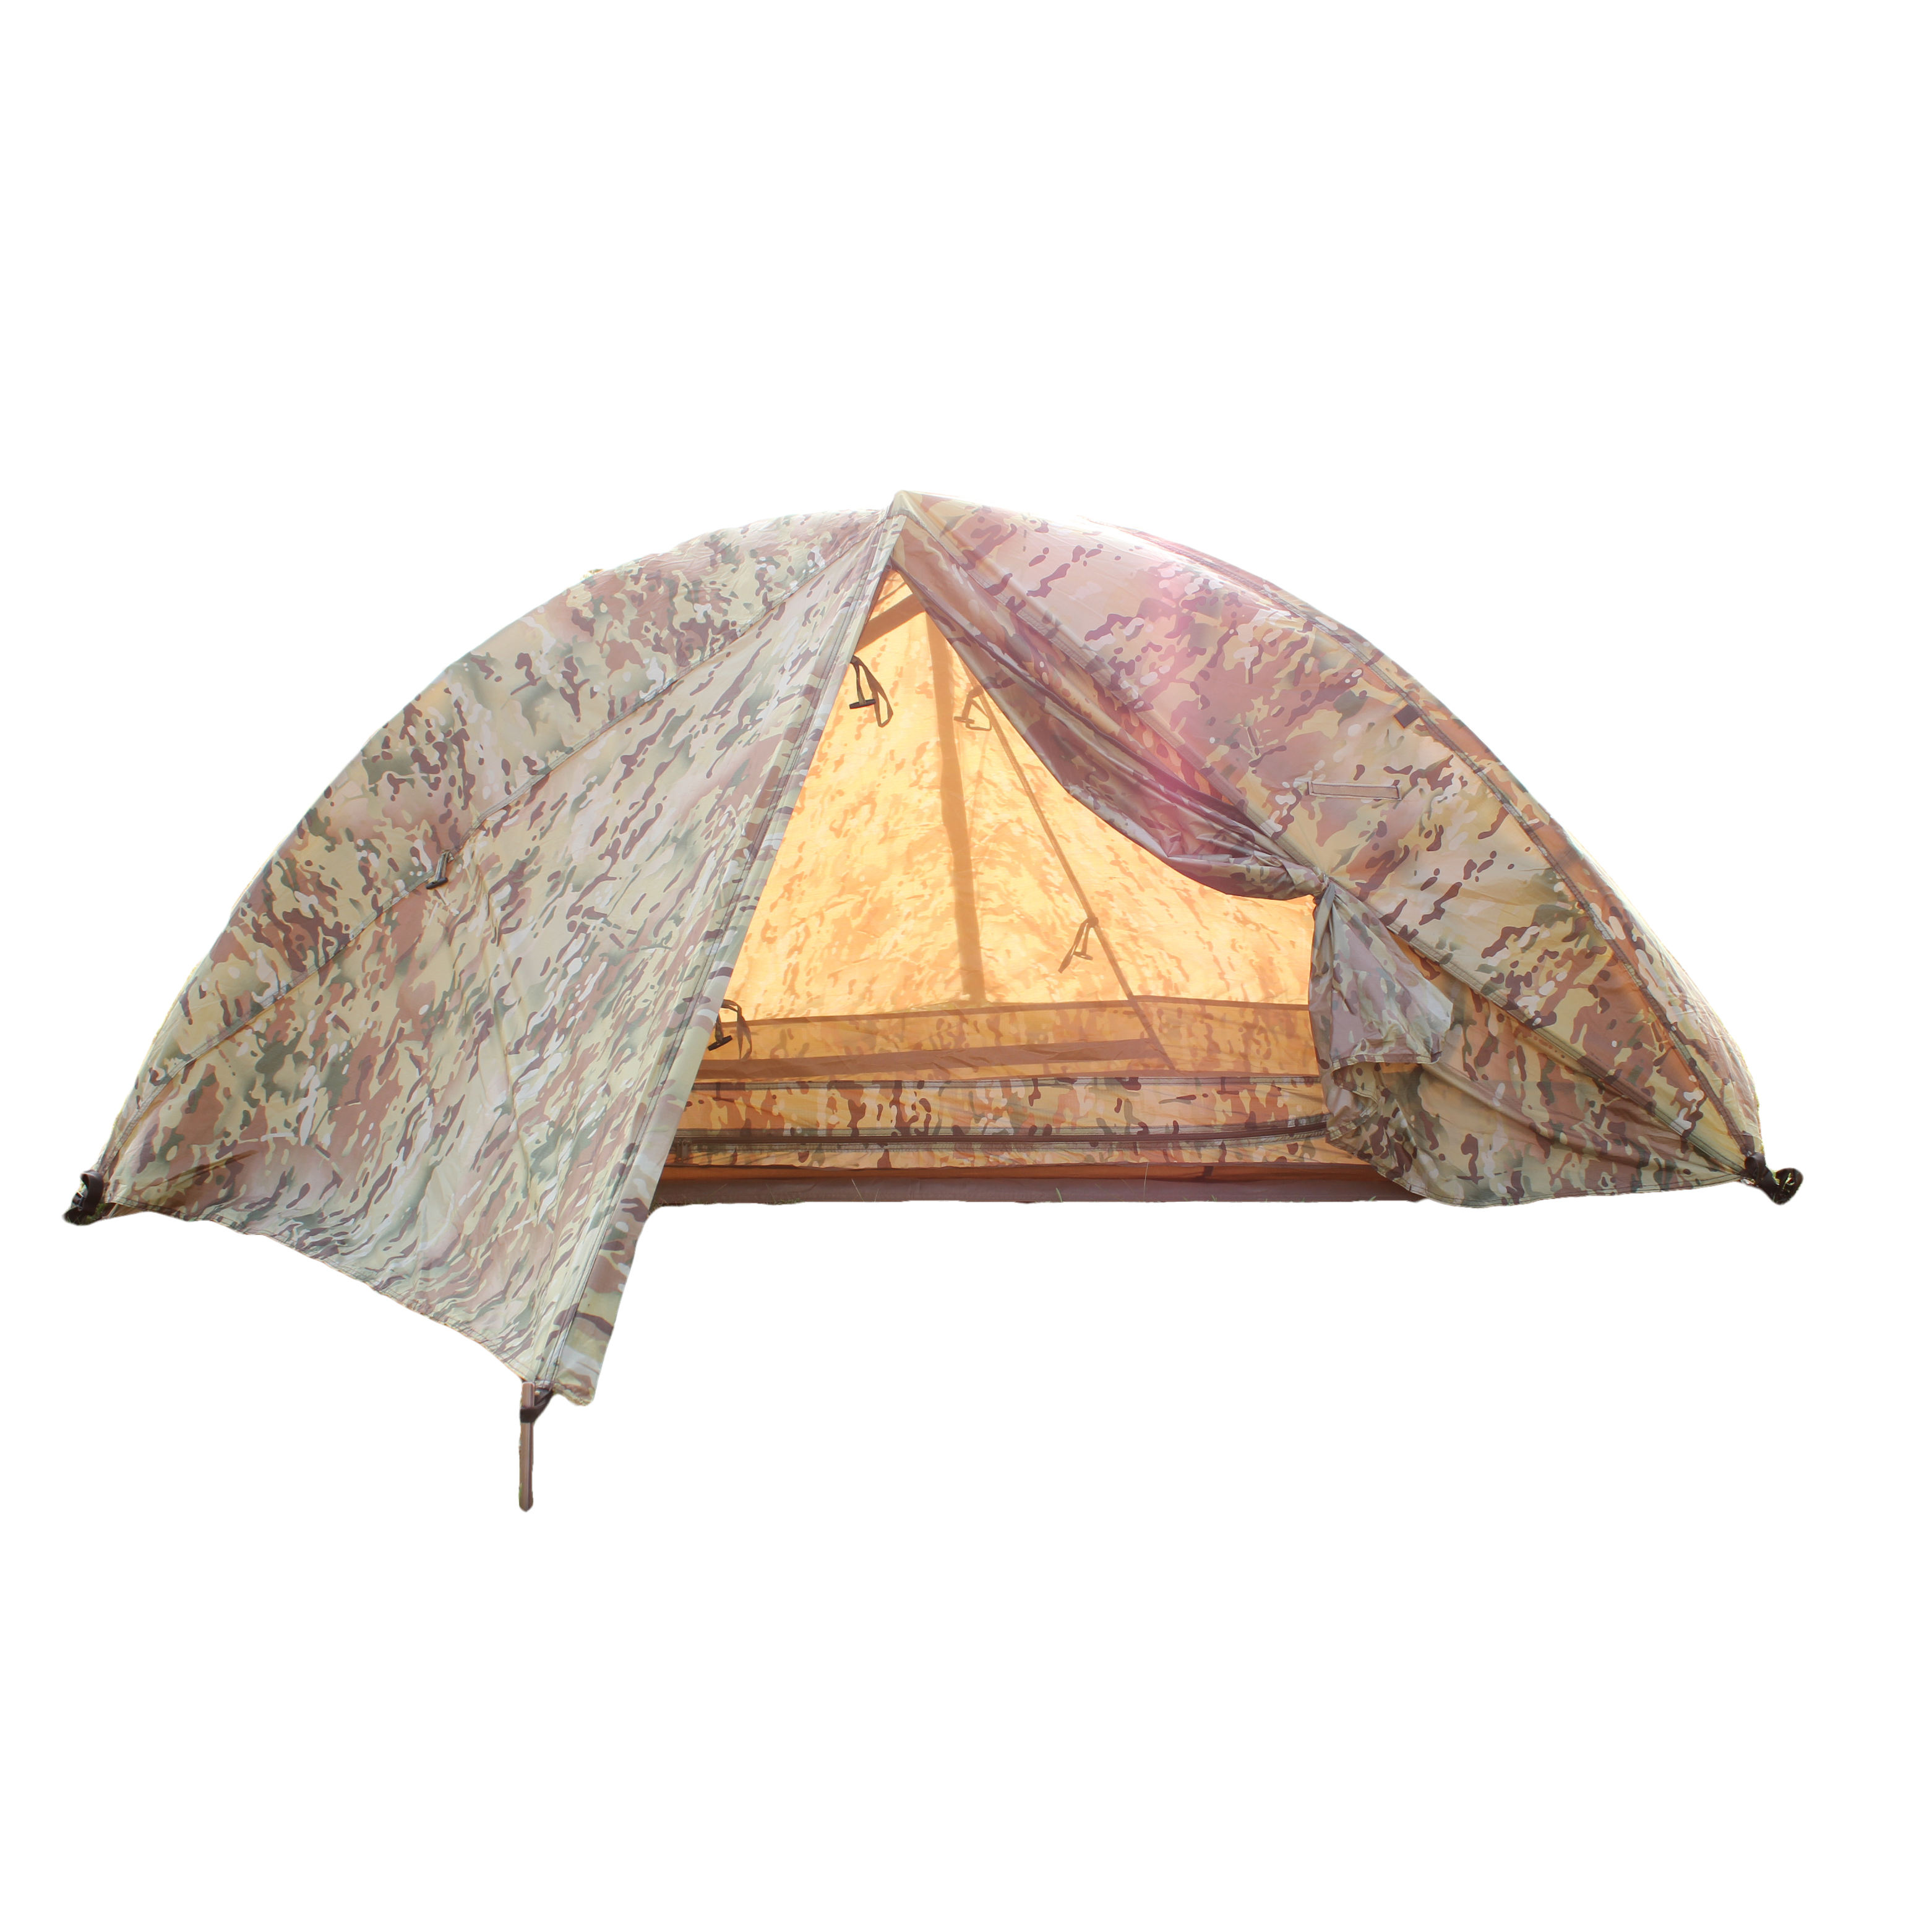 1 person camping multi camouflage bed play tent with mosquito net for kids